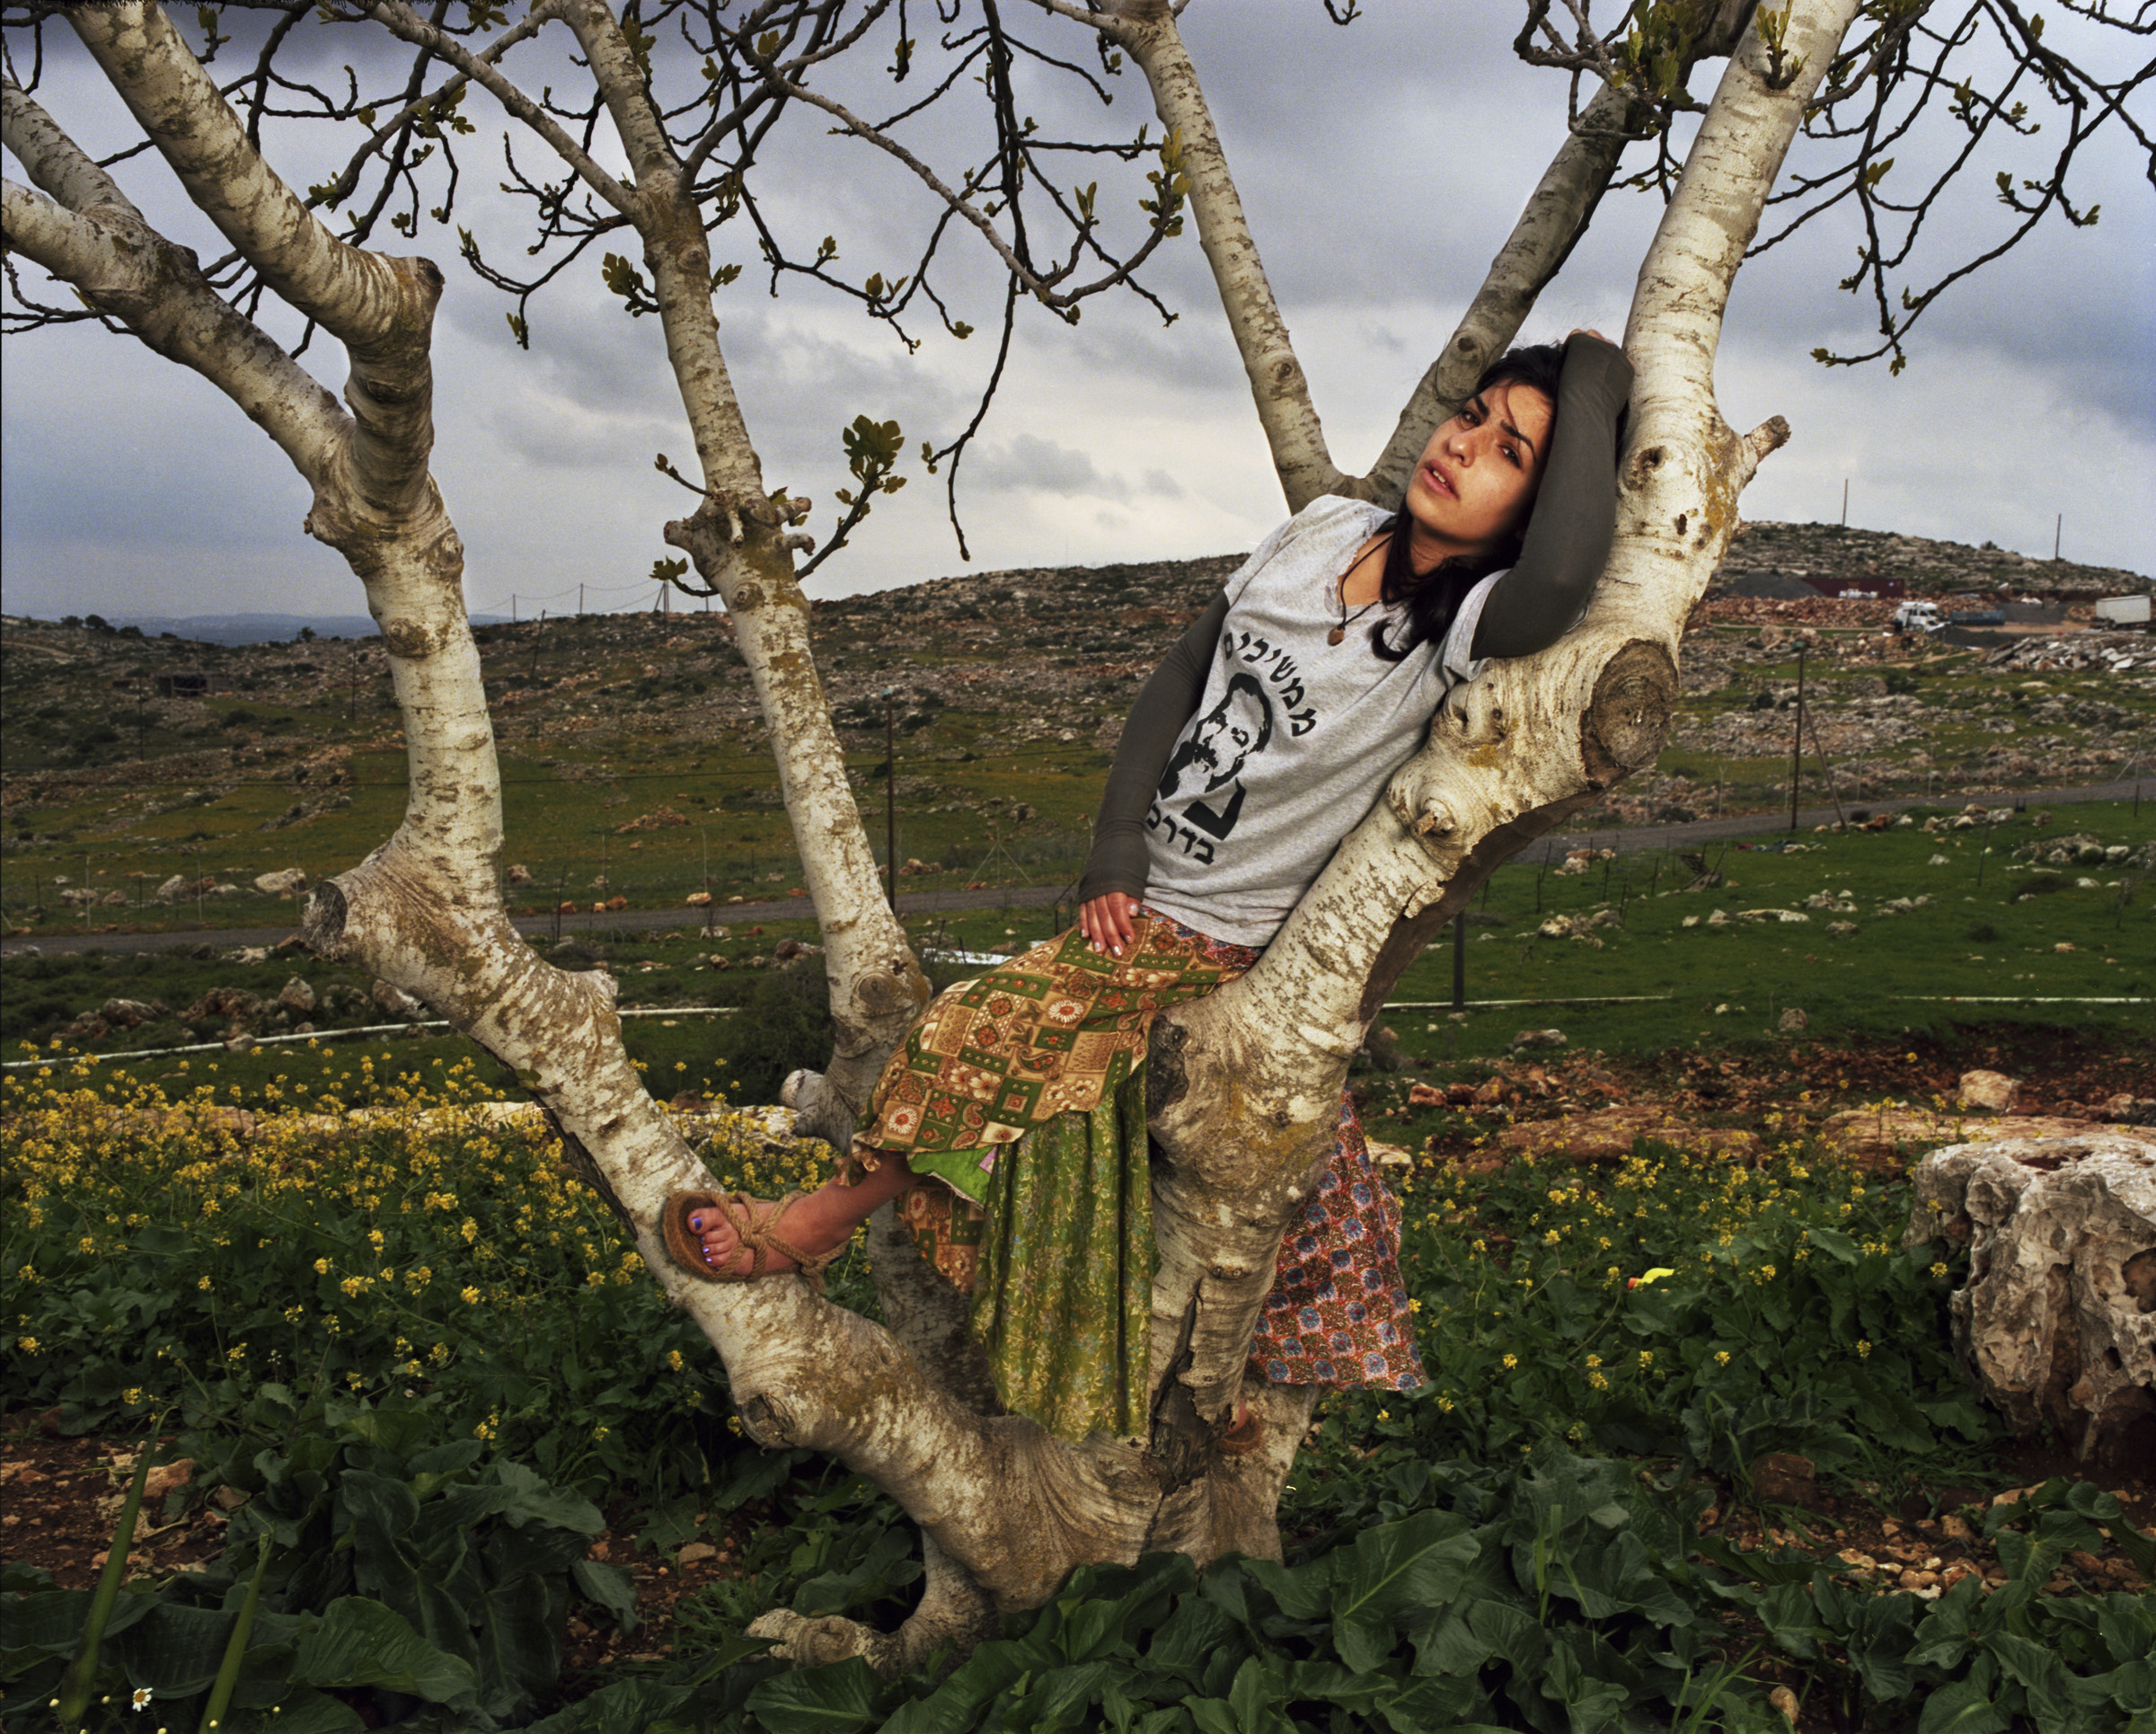 """Roni, 2011   Roni in her backyard of K'far Tapuach Settlement. The Itamar woman murdered in March was Roni's teacher. """"If someone comes to kill you, then you kill them first, says the Torah,"""" says Roni, who was wearing a Meir Kahane t-shirt."""